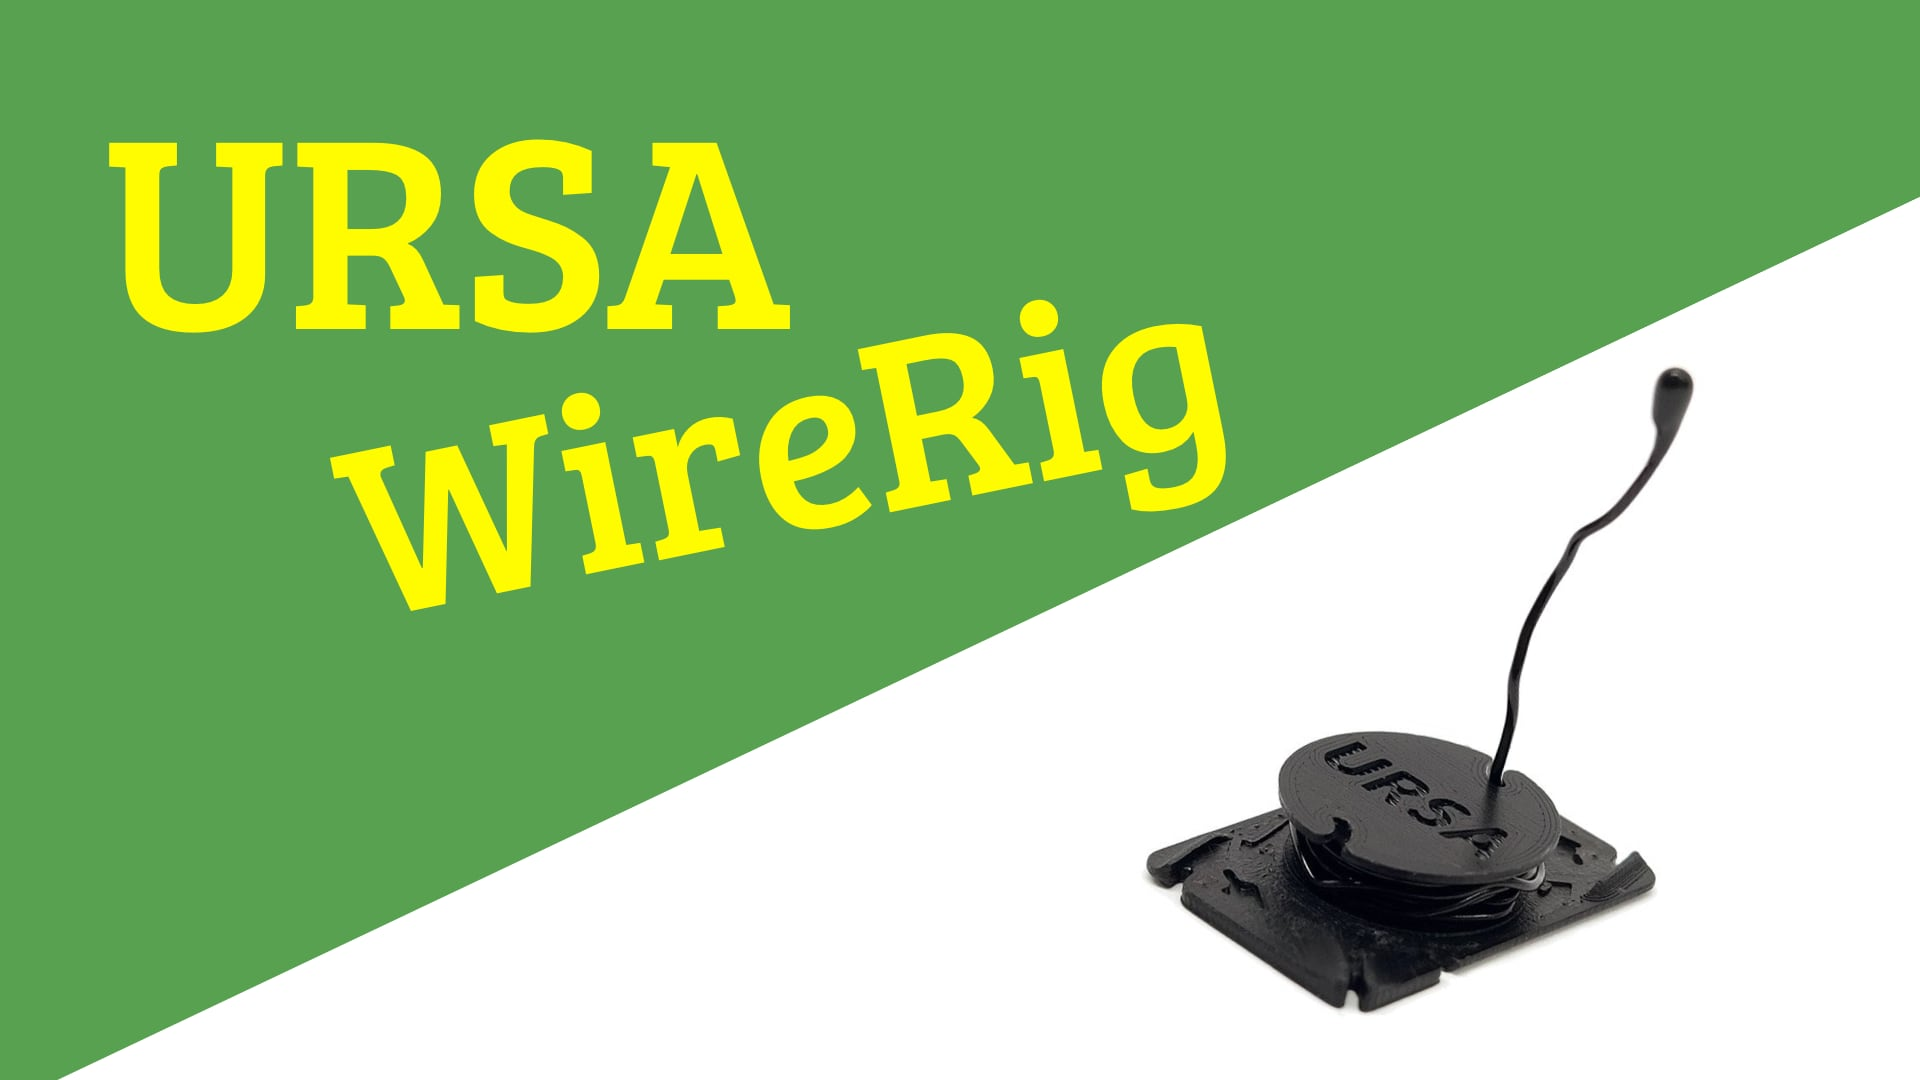 The URSA WireRig turns any lavalier into a Gooseneck!